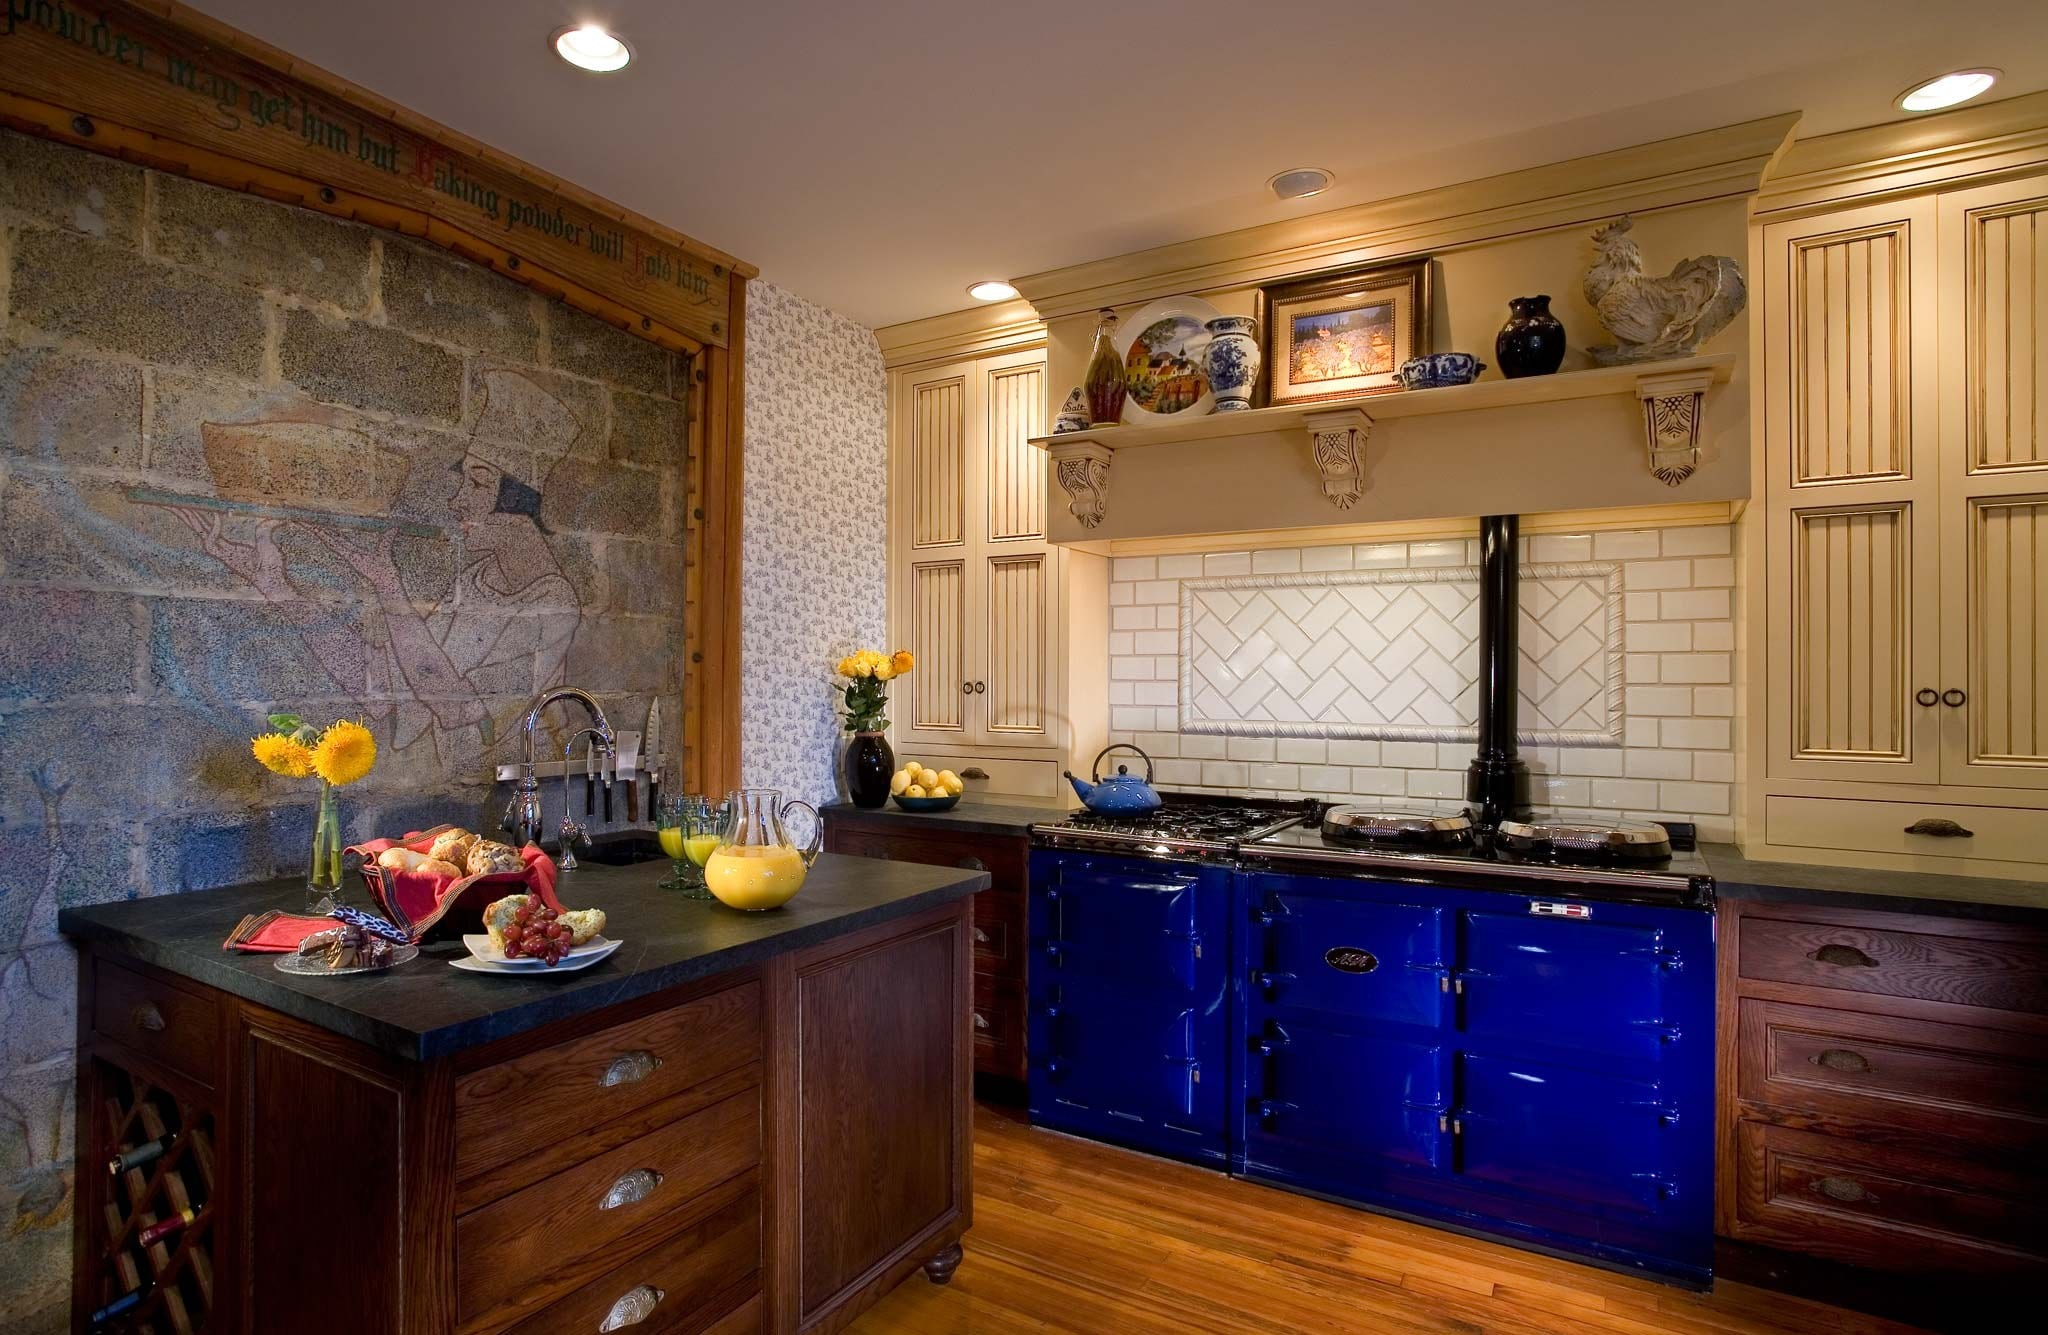 Carlisle PA Remodeled Kitchen Mother Hubbards Custom Cabinetry S 016 2048W